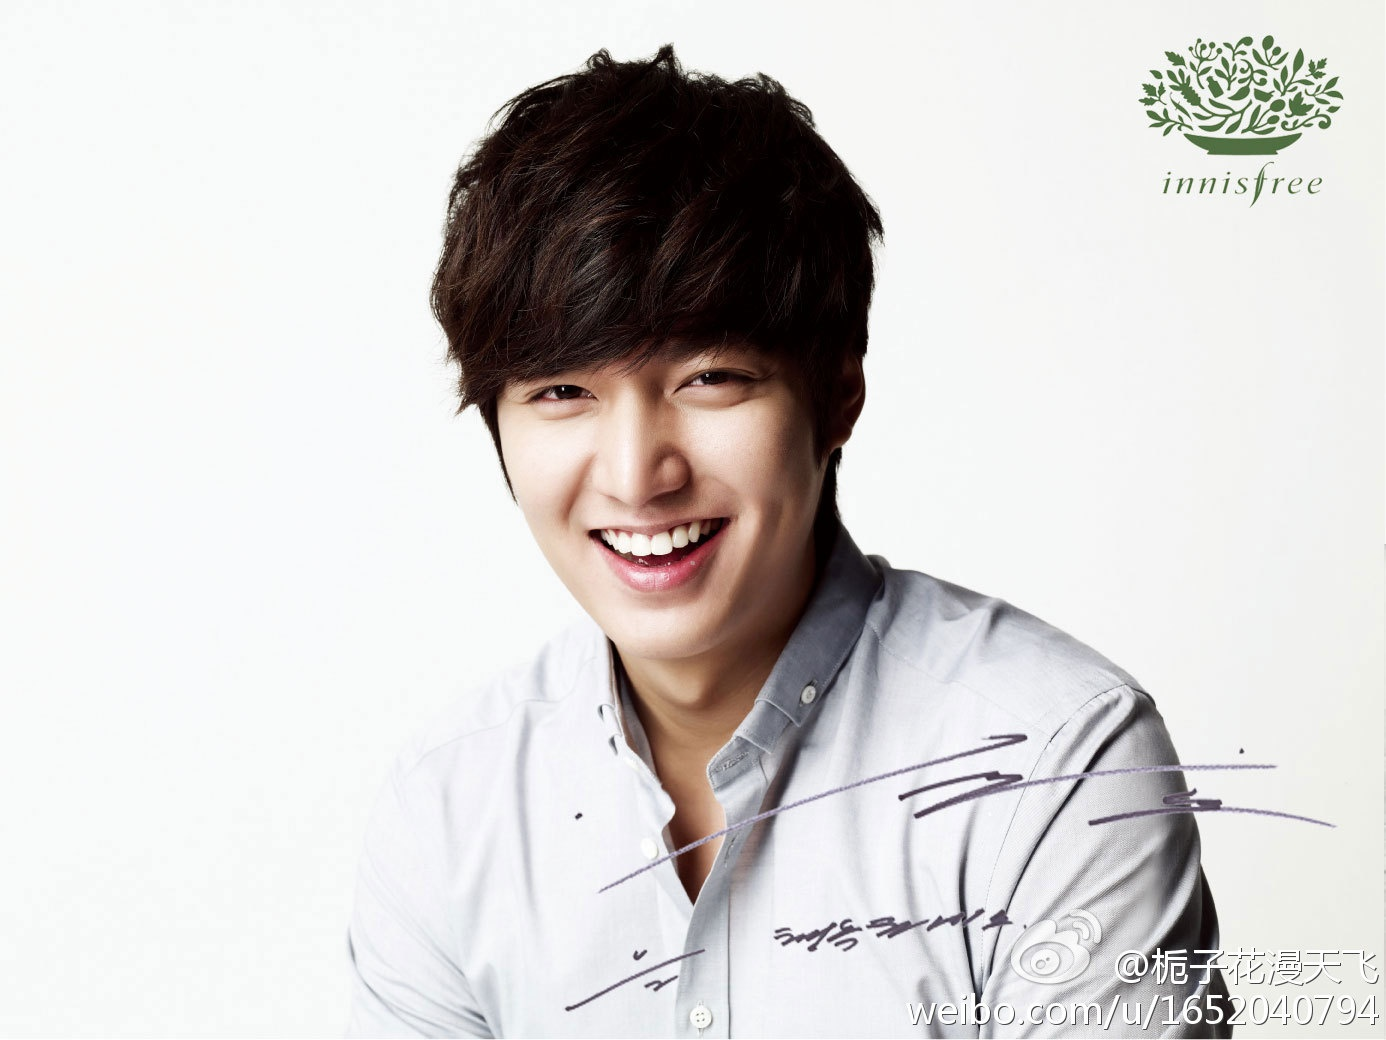 The imaginary world of monika lee min ho for innisfree 21 03 2012